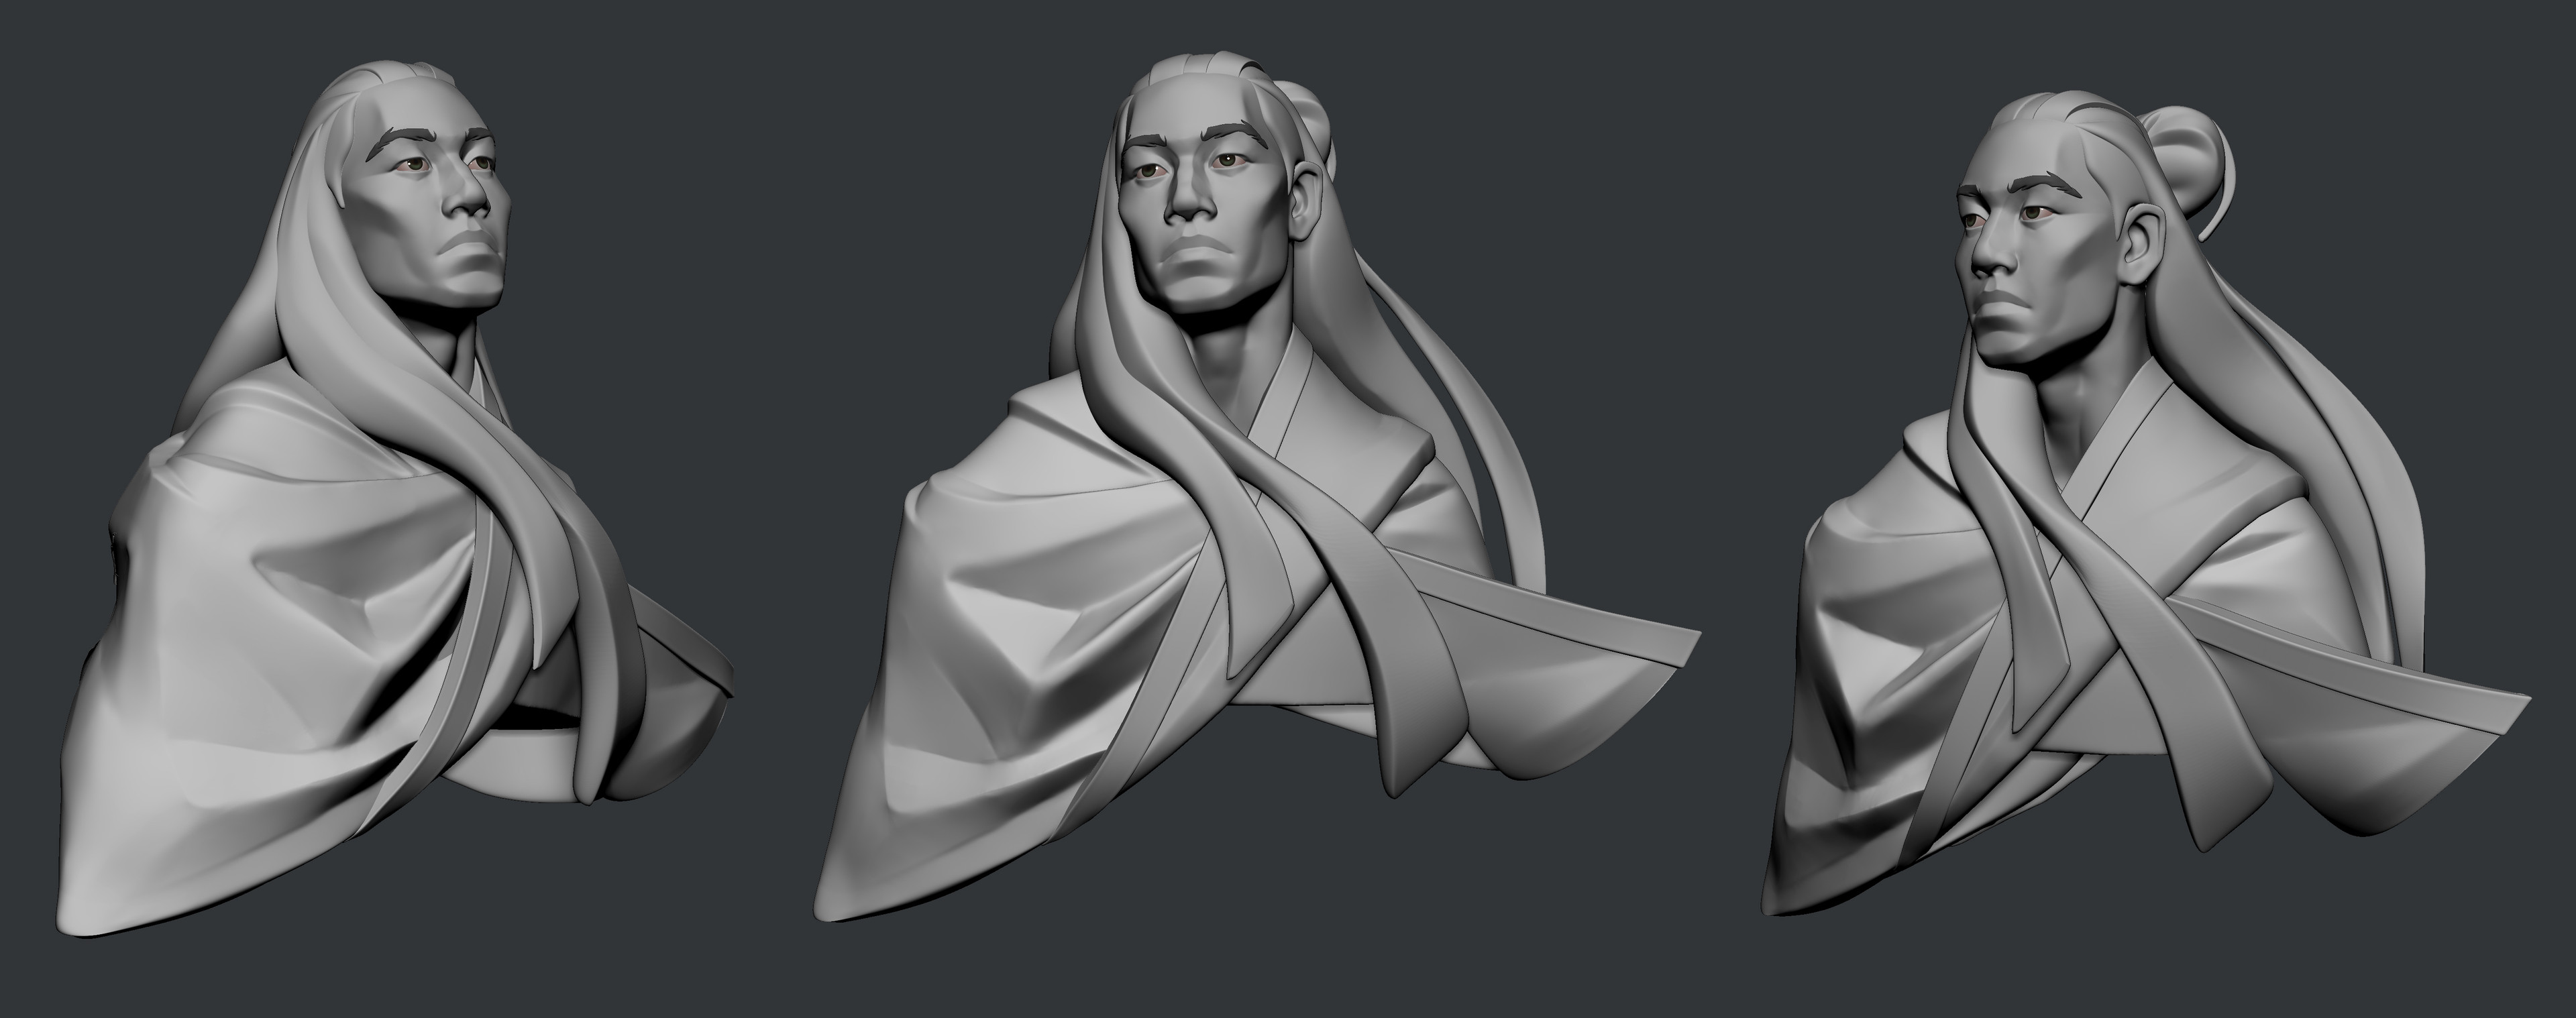 Zbrush Screengrab